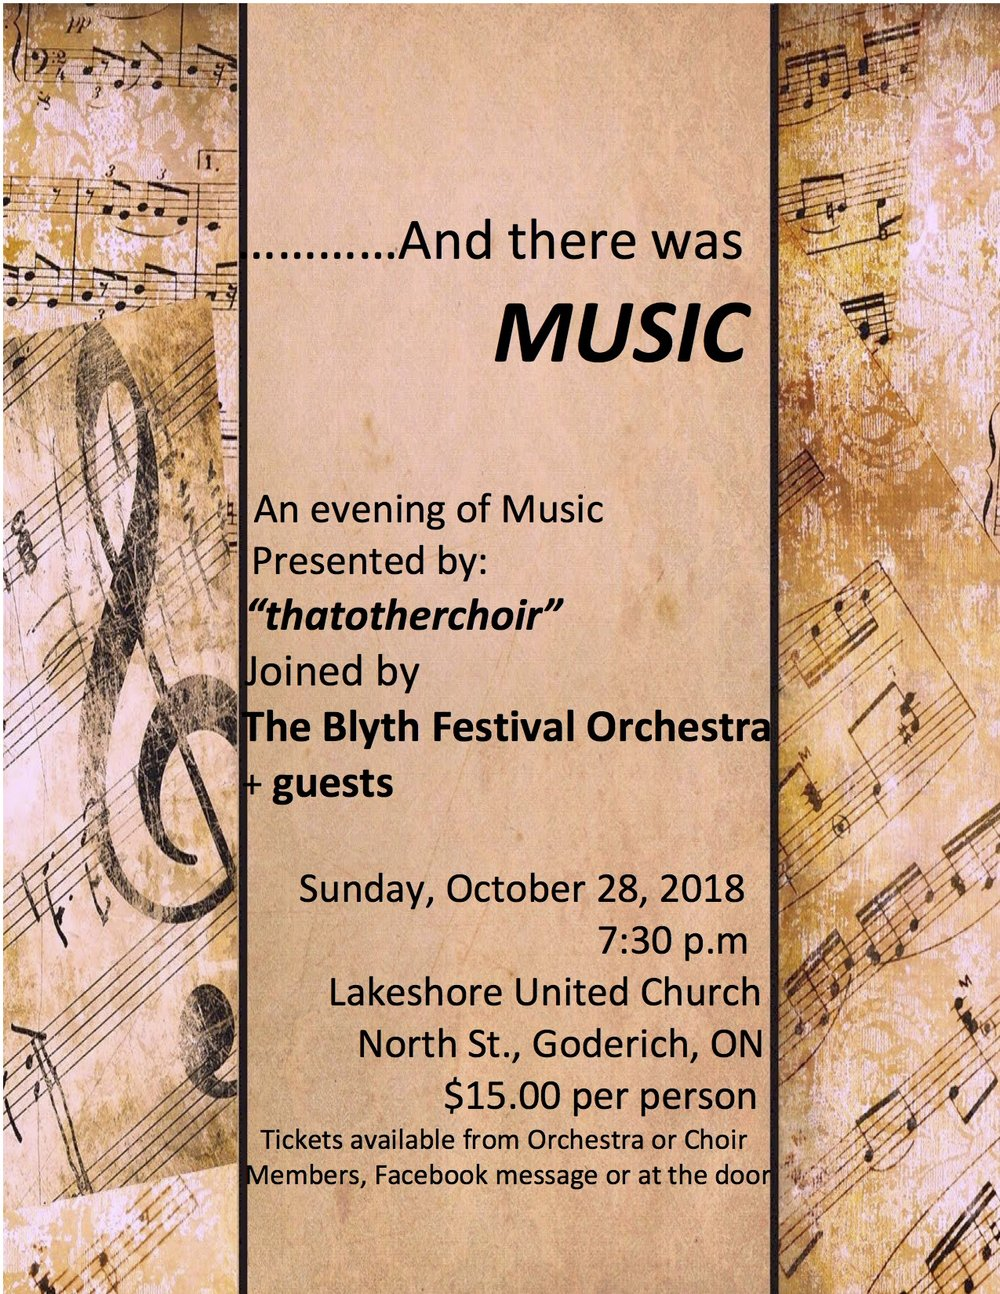 "Come out for a wonderful evening of music, provided by ""thatotherchoir"" and The Blyth Festival Orchestra. Concert starts at 7:30 PM October 28 at Lakeshore United Church. Tickets are $15.00 per person"